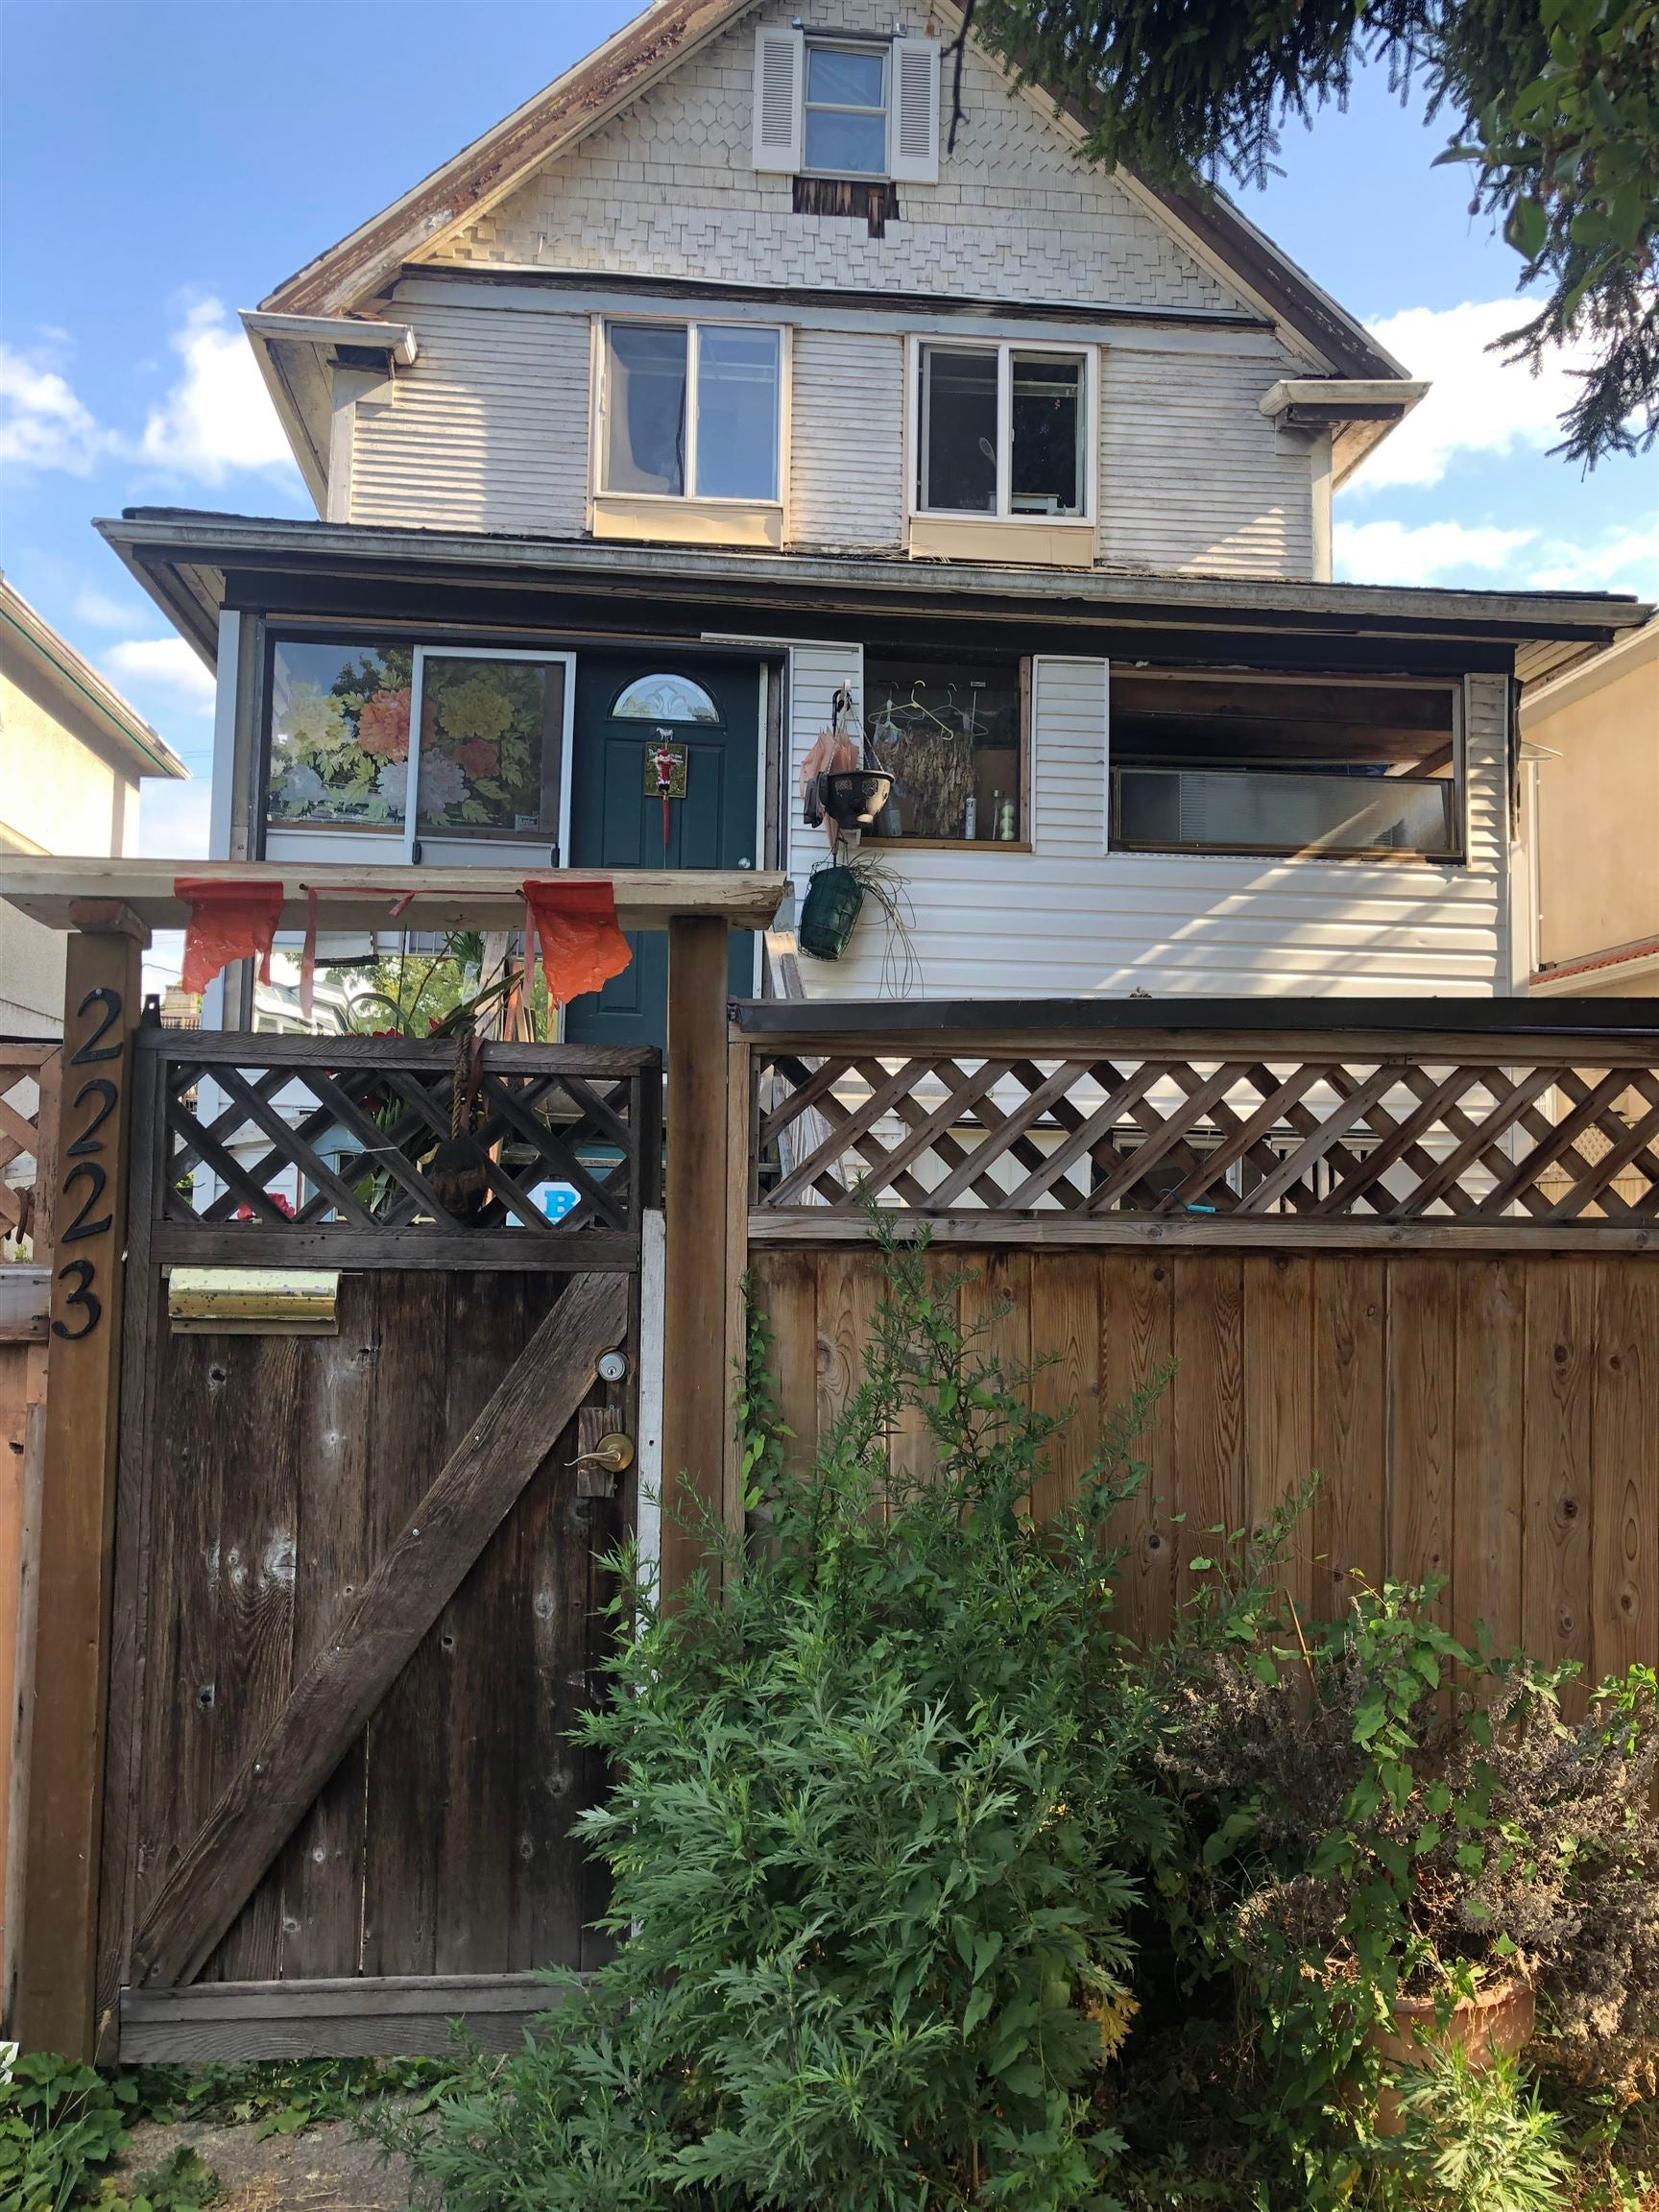 2223 OXFORD STREET - Hastings House/Single Family for sale, 2 Bedrooms (R2616440) - #1